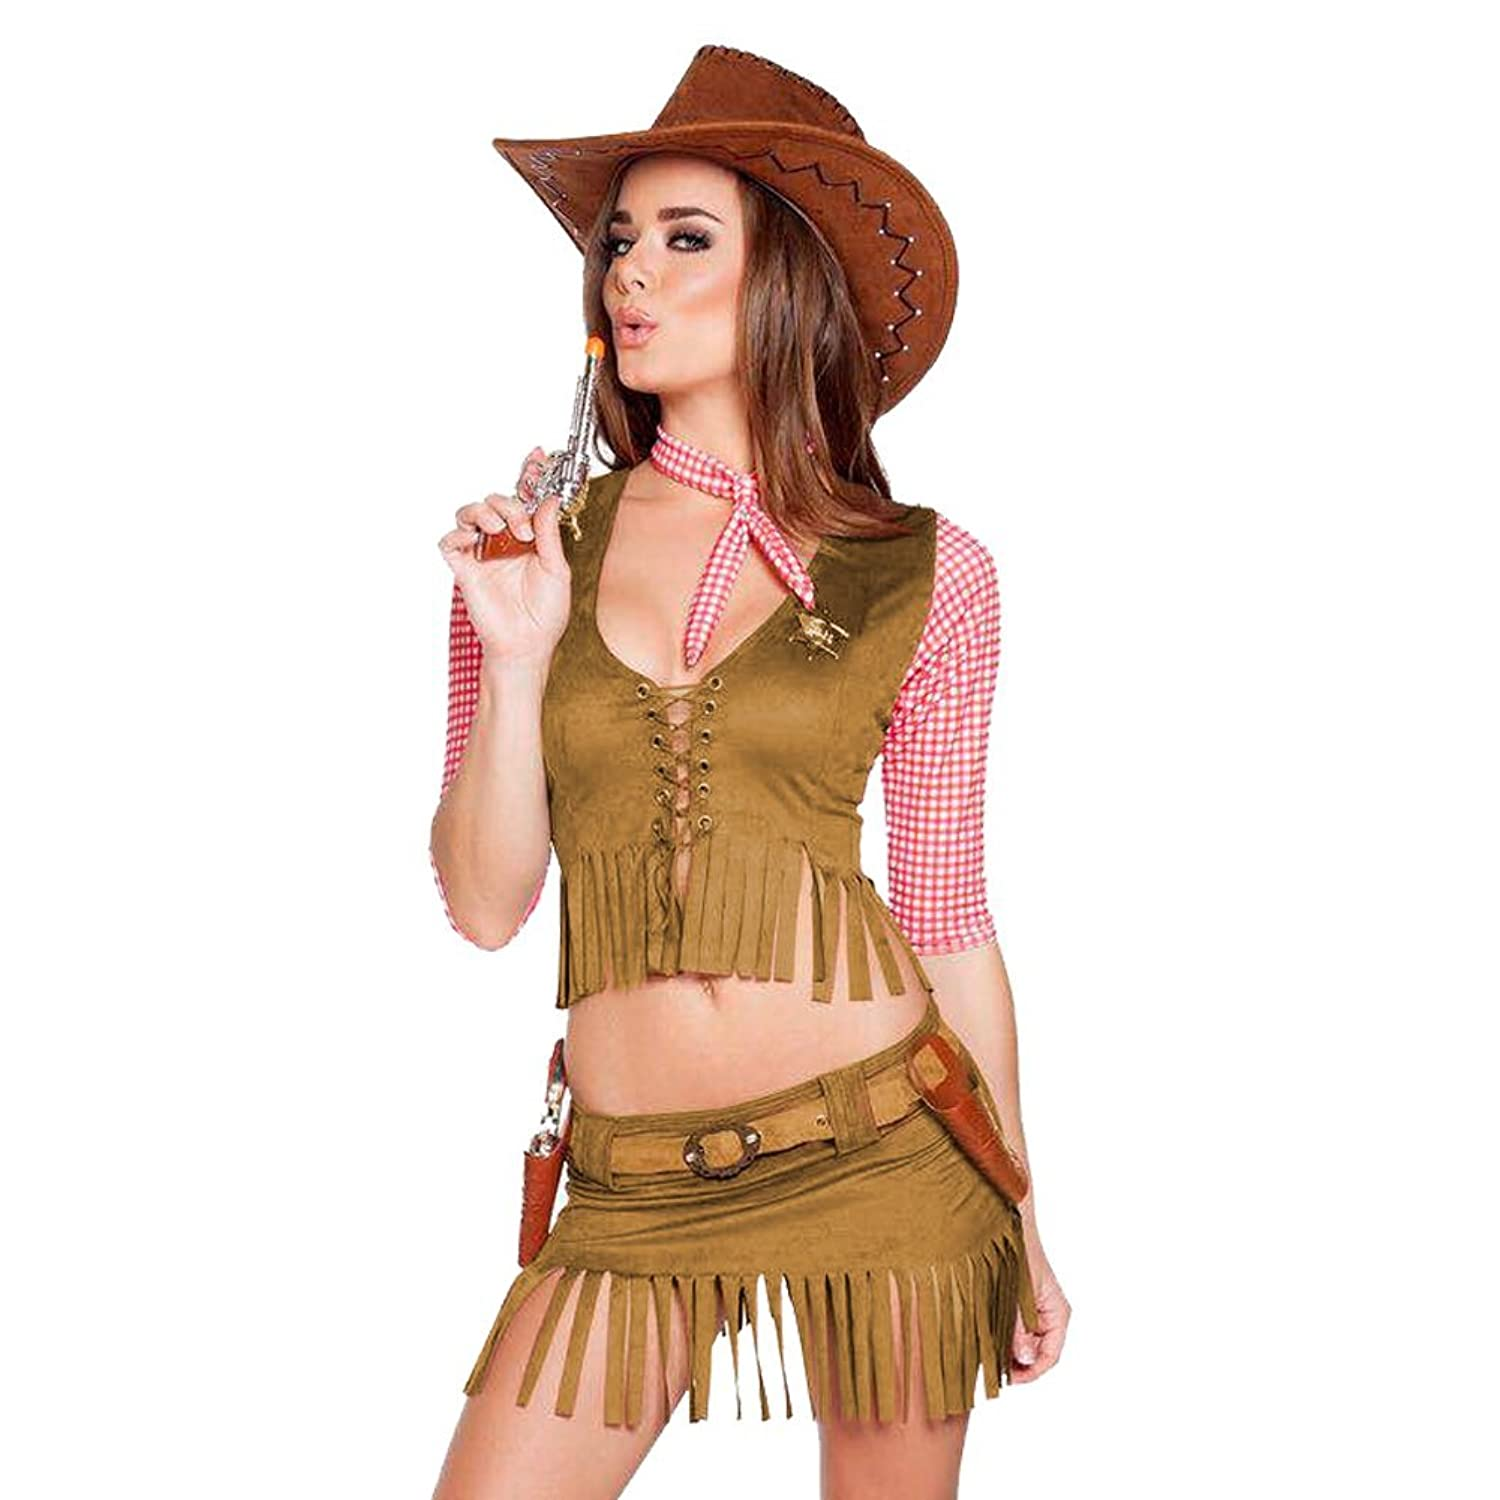 Women Halloween Cowboy Cowgirl Pirate Outfit Fancy Party Costume